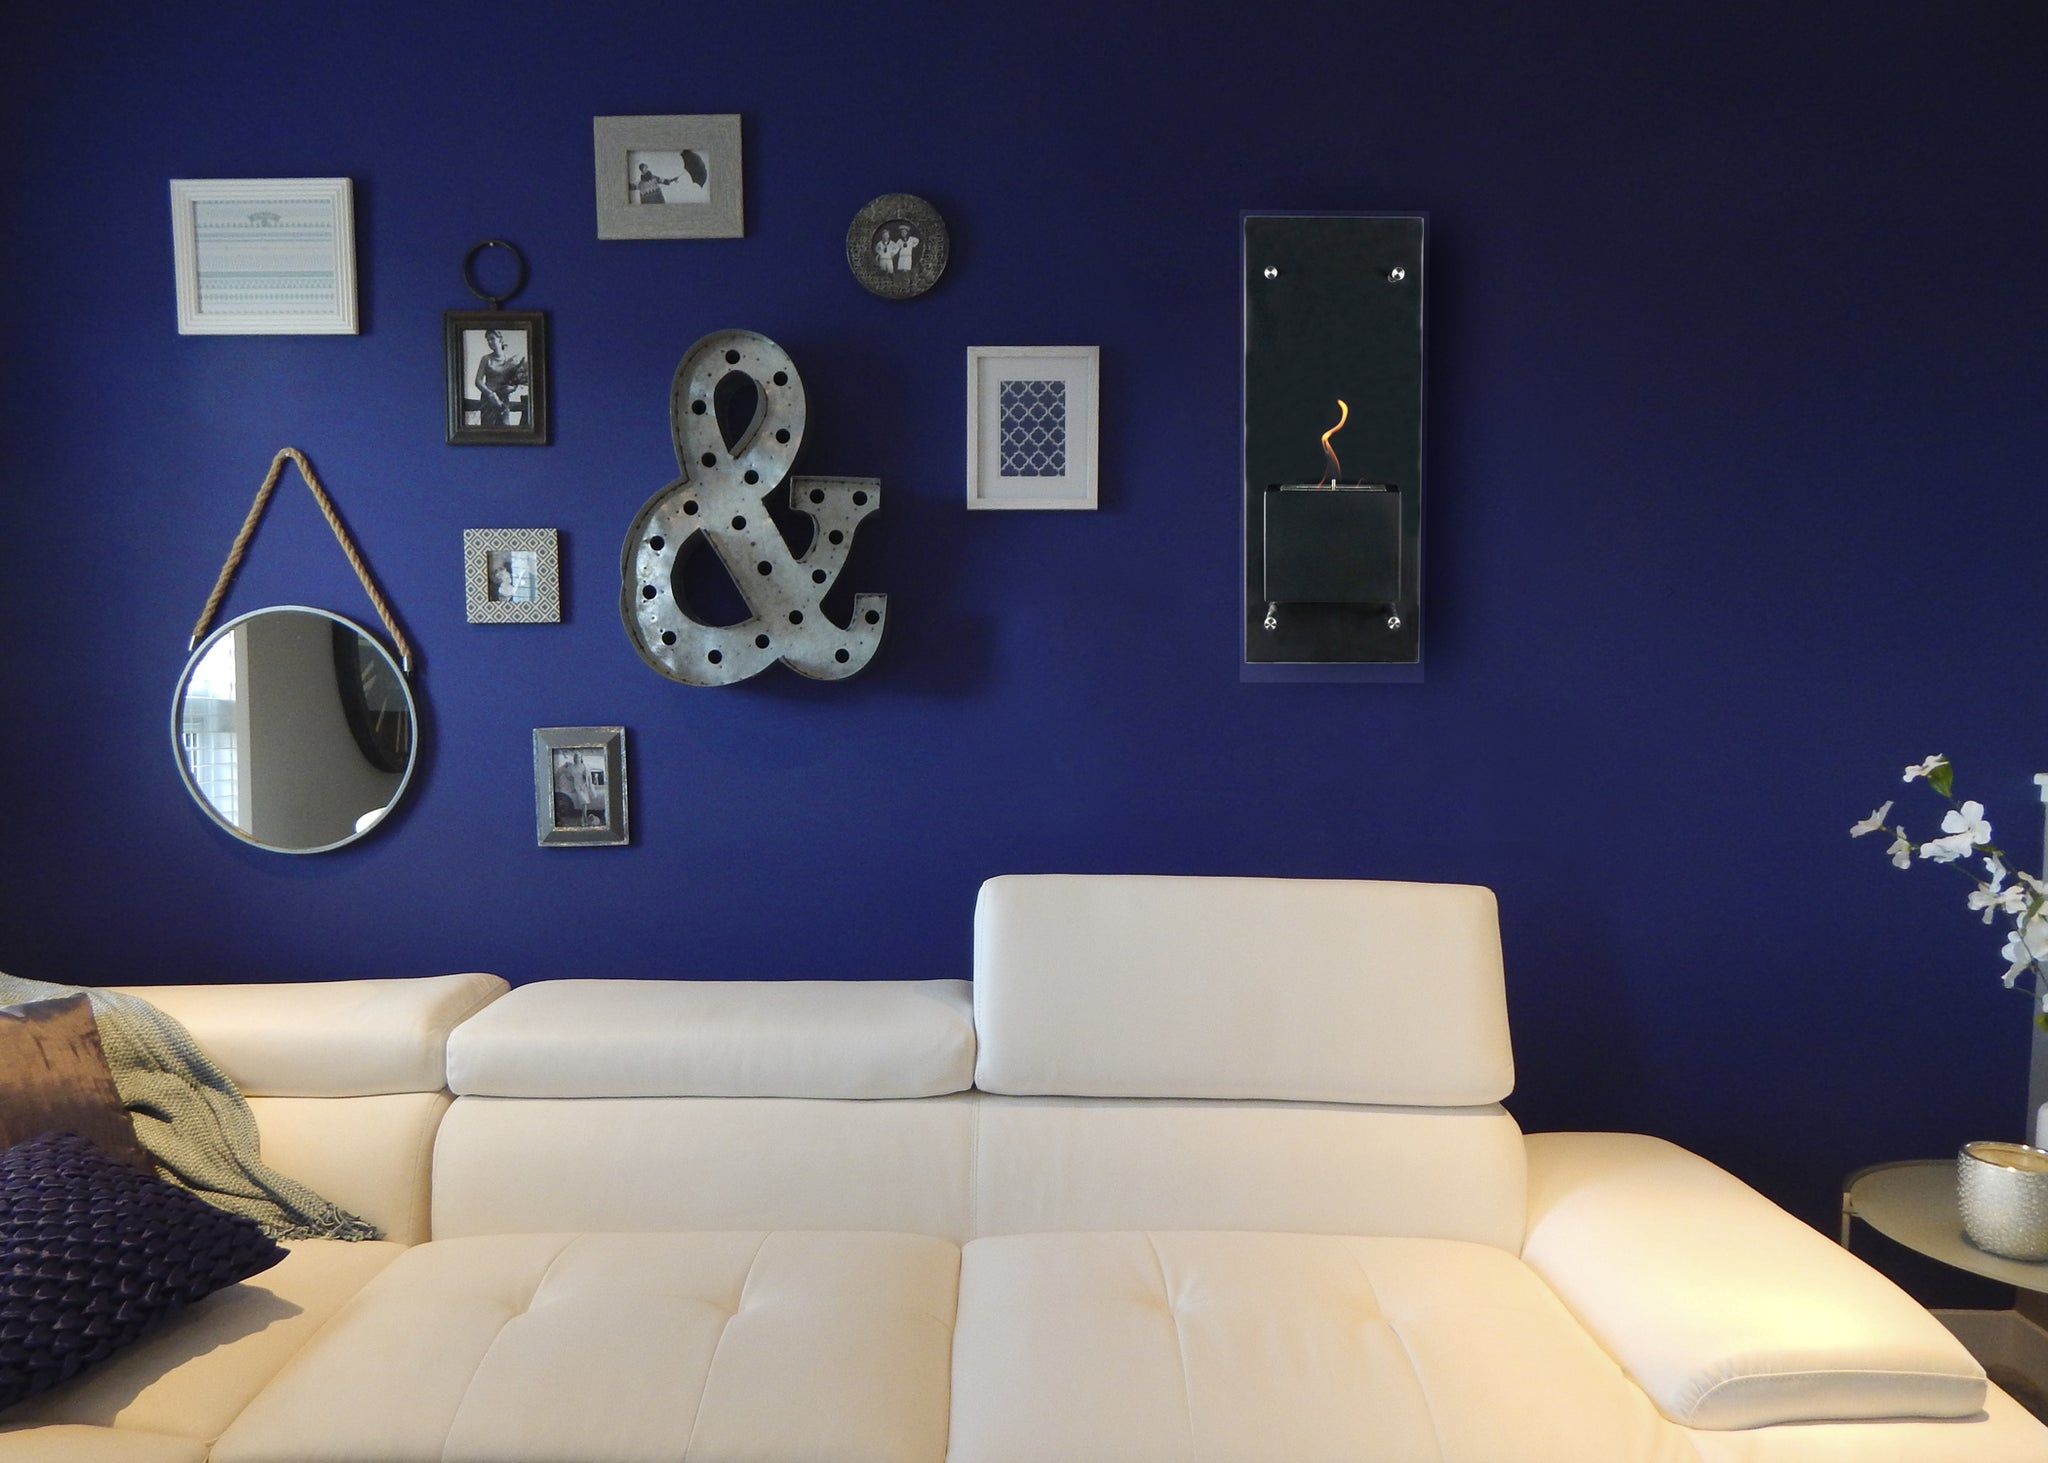 Cannello Wall Mounted Ethanol Fireplace Bluworld Homelements